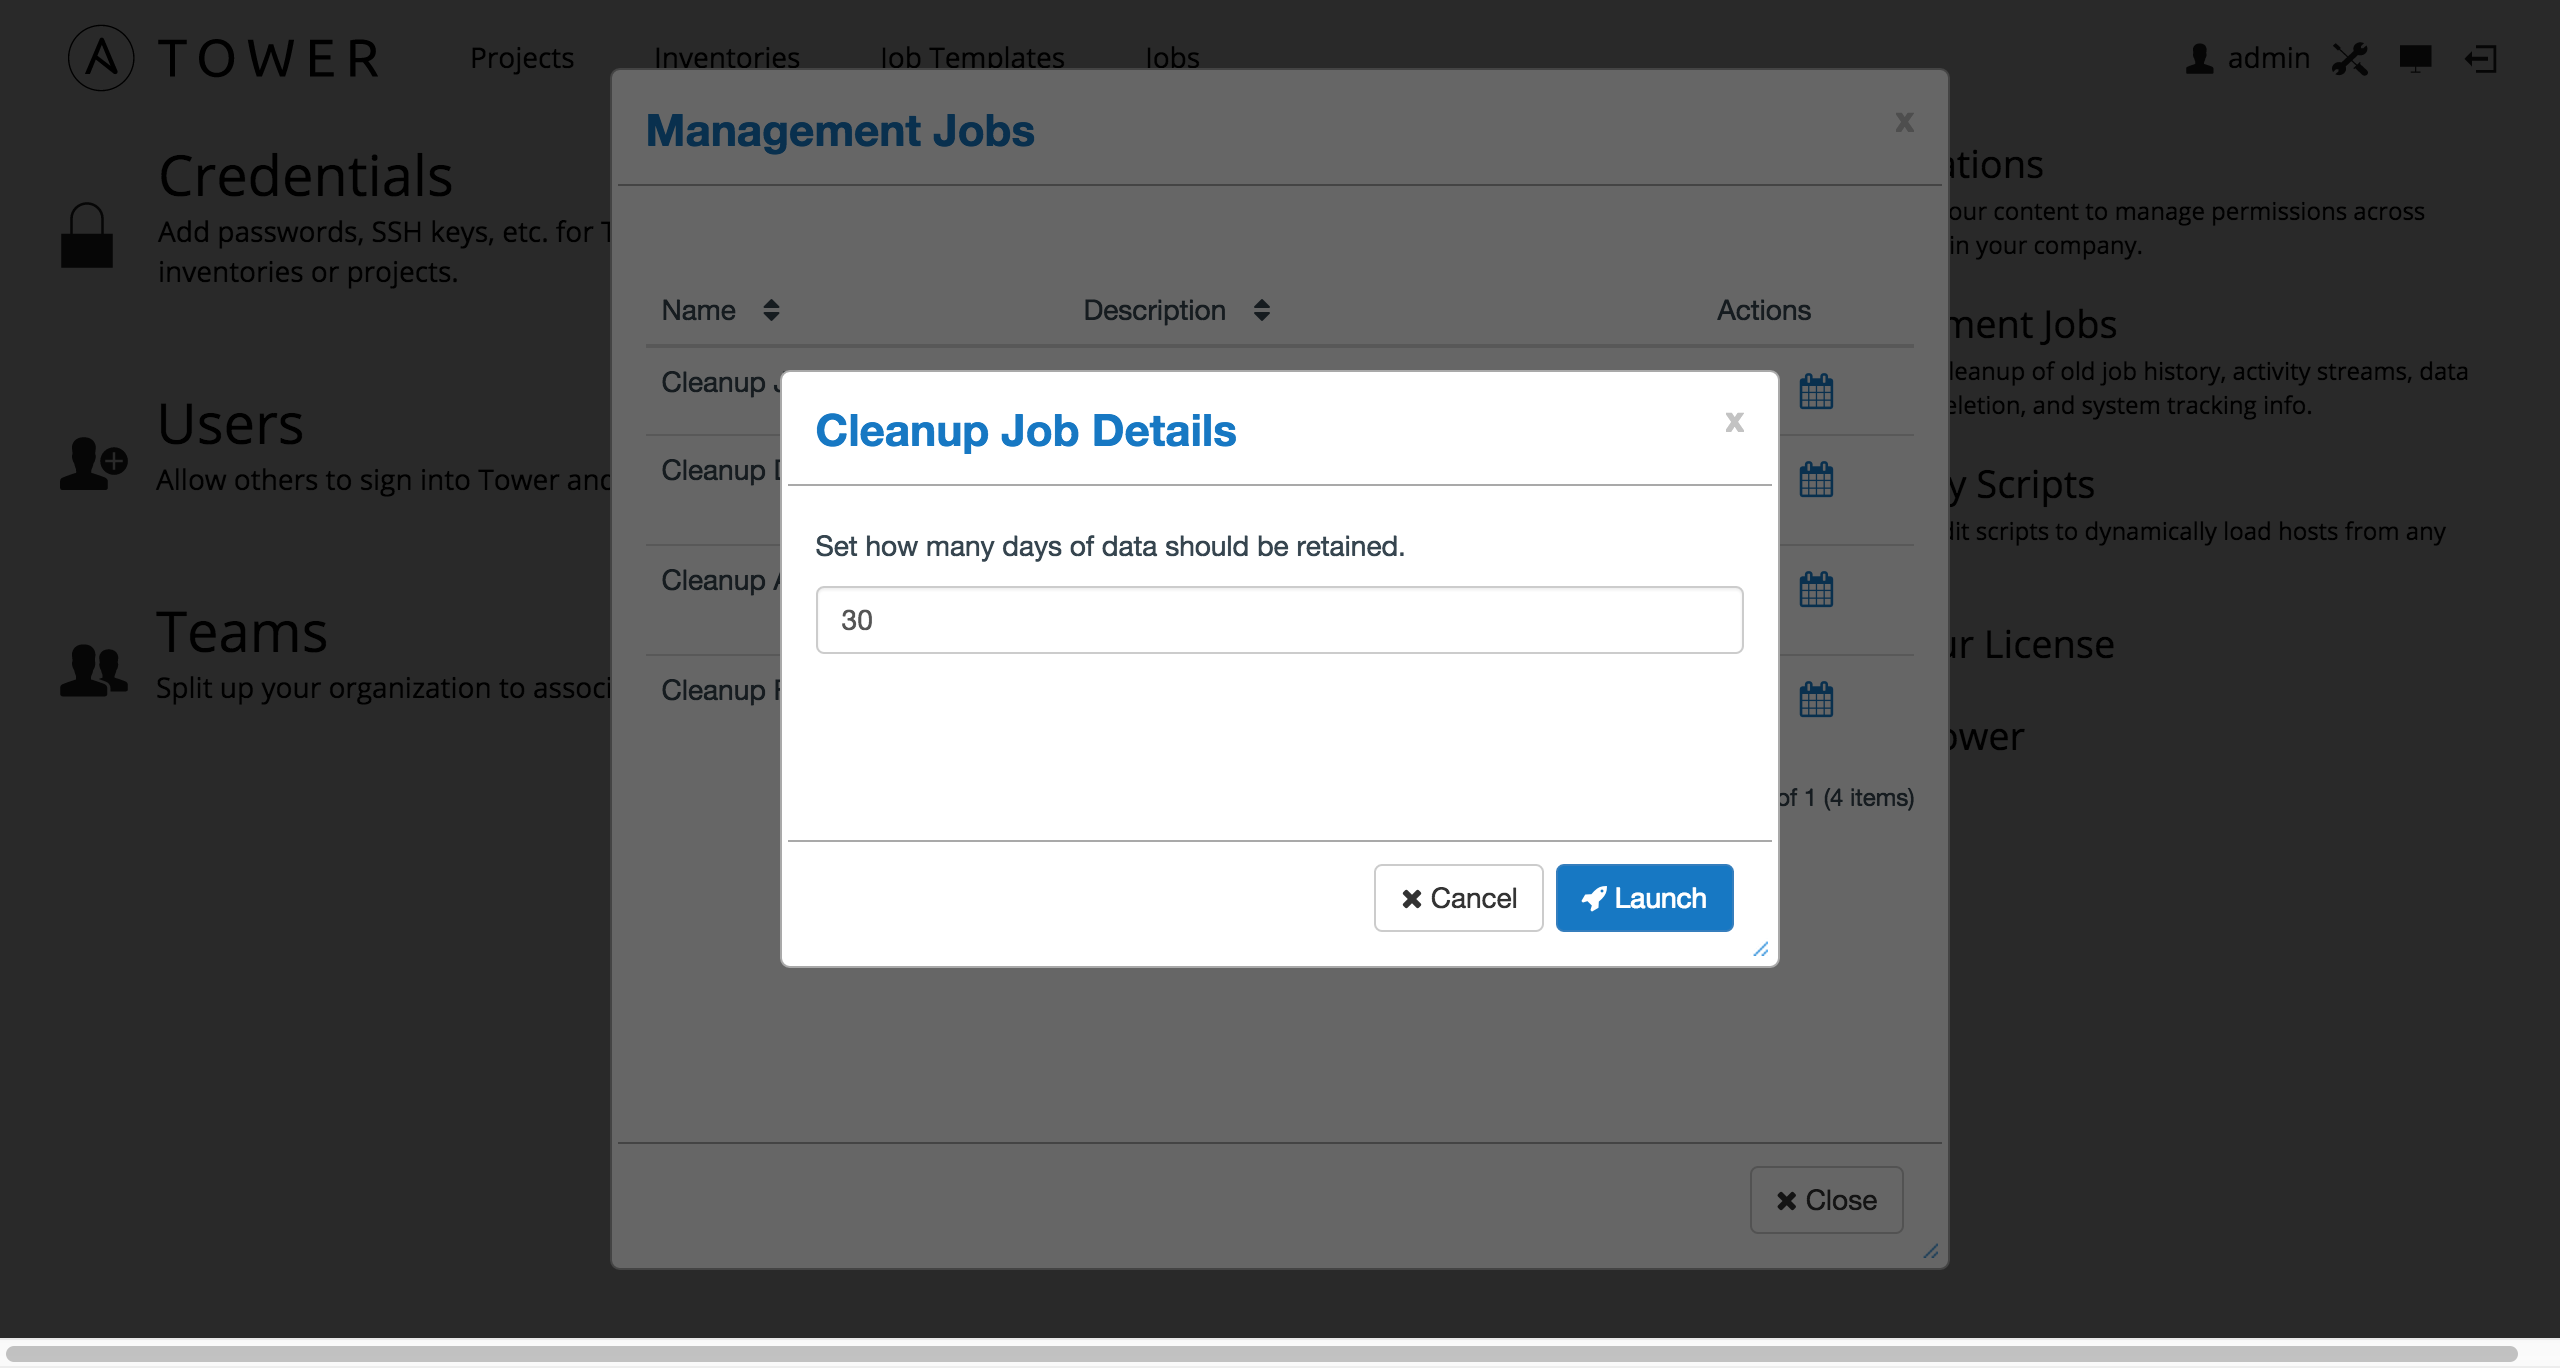 3 management jobs ansible tower administration guide management jobs cleanup job launch